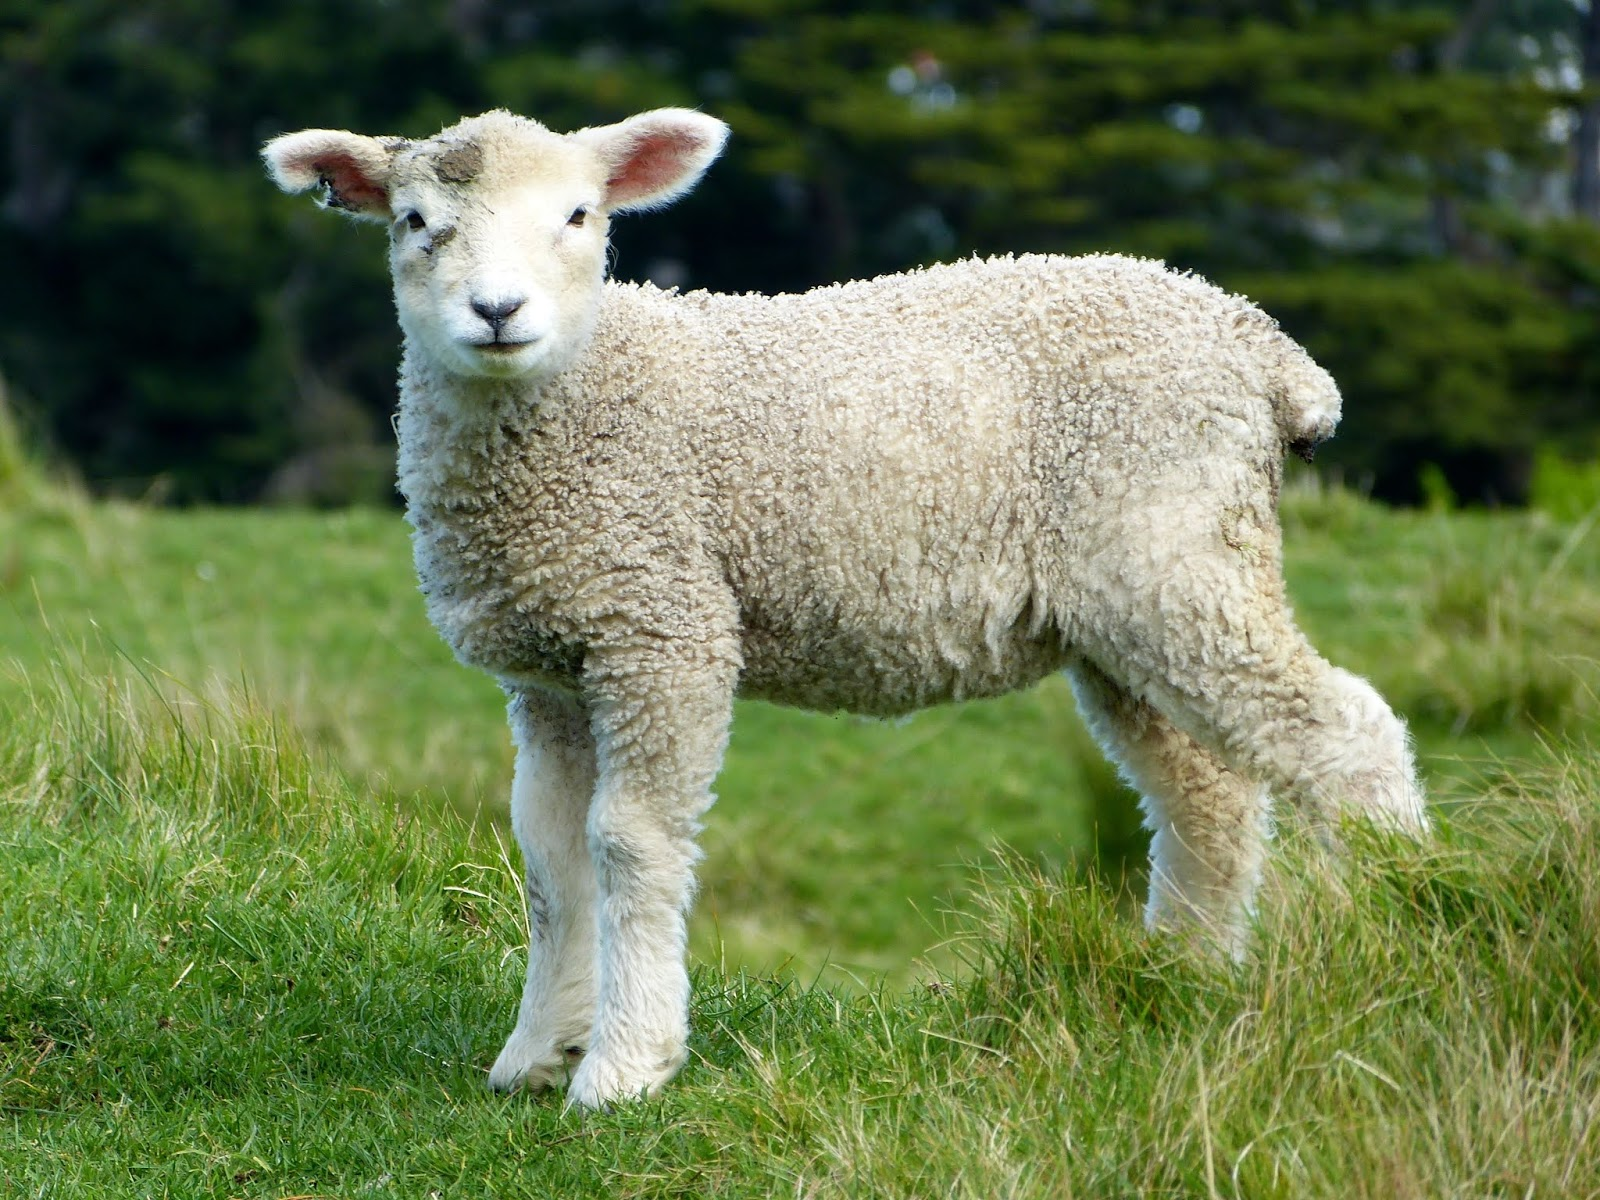 lamb in the field of grass